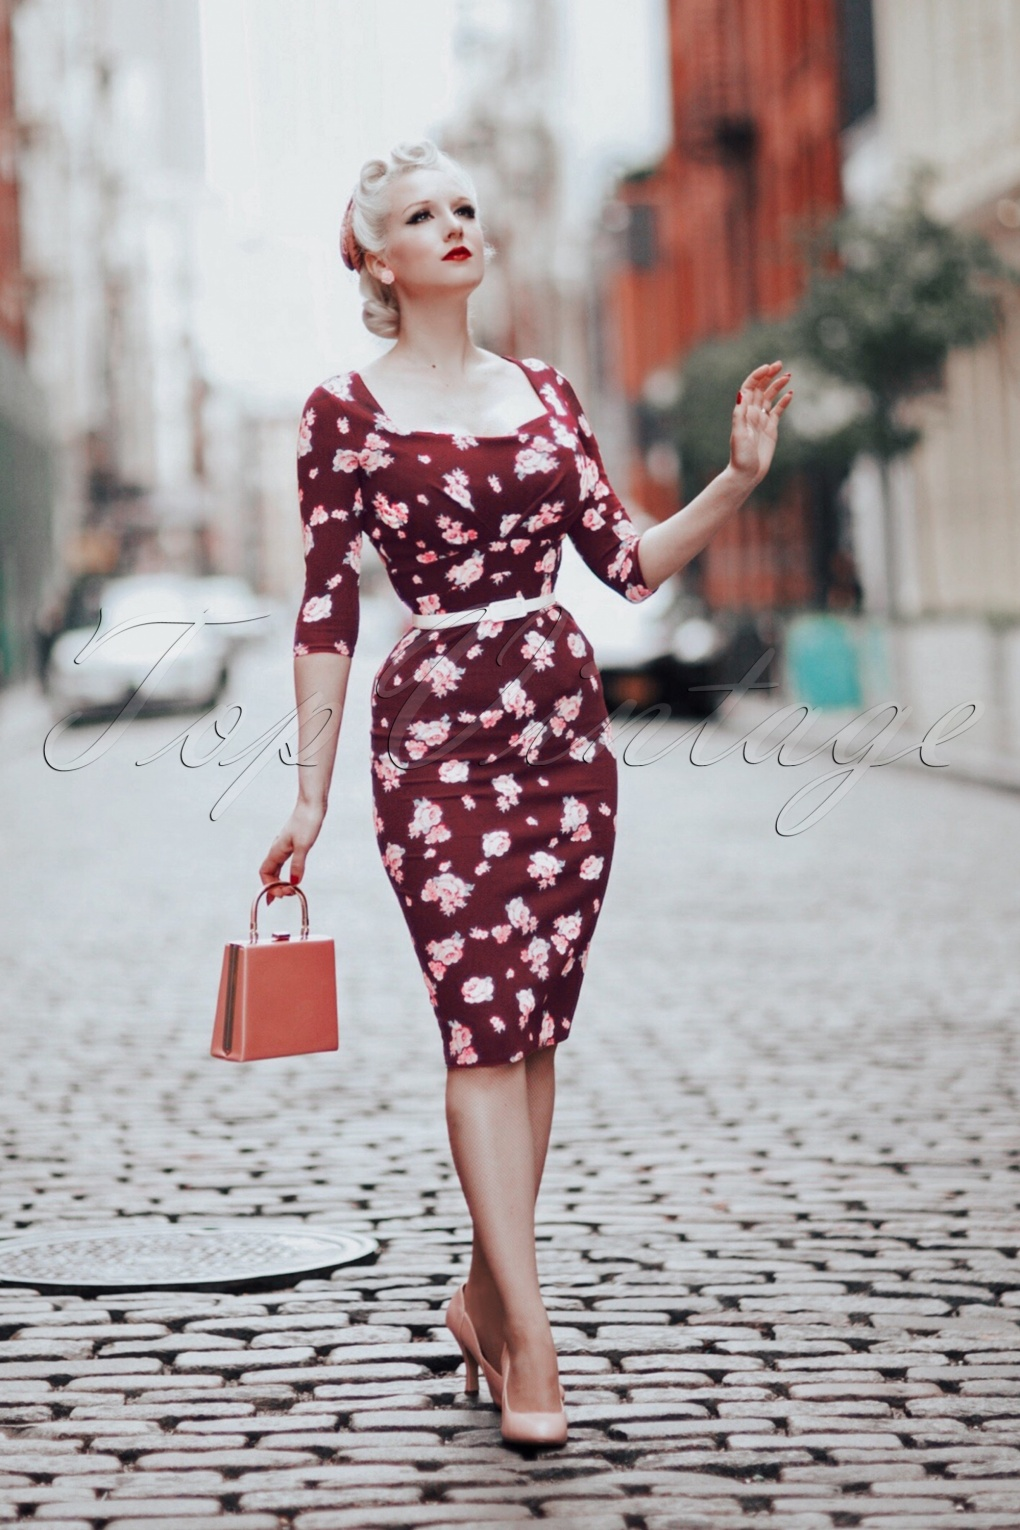 Pin Up Dresses | Pinup Clothing & Fashion 50s Ruby Floral Pencil Dress in Wine £51.91 AT vintagedancer.com